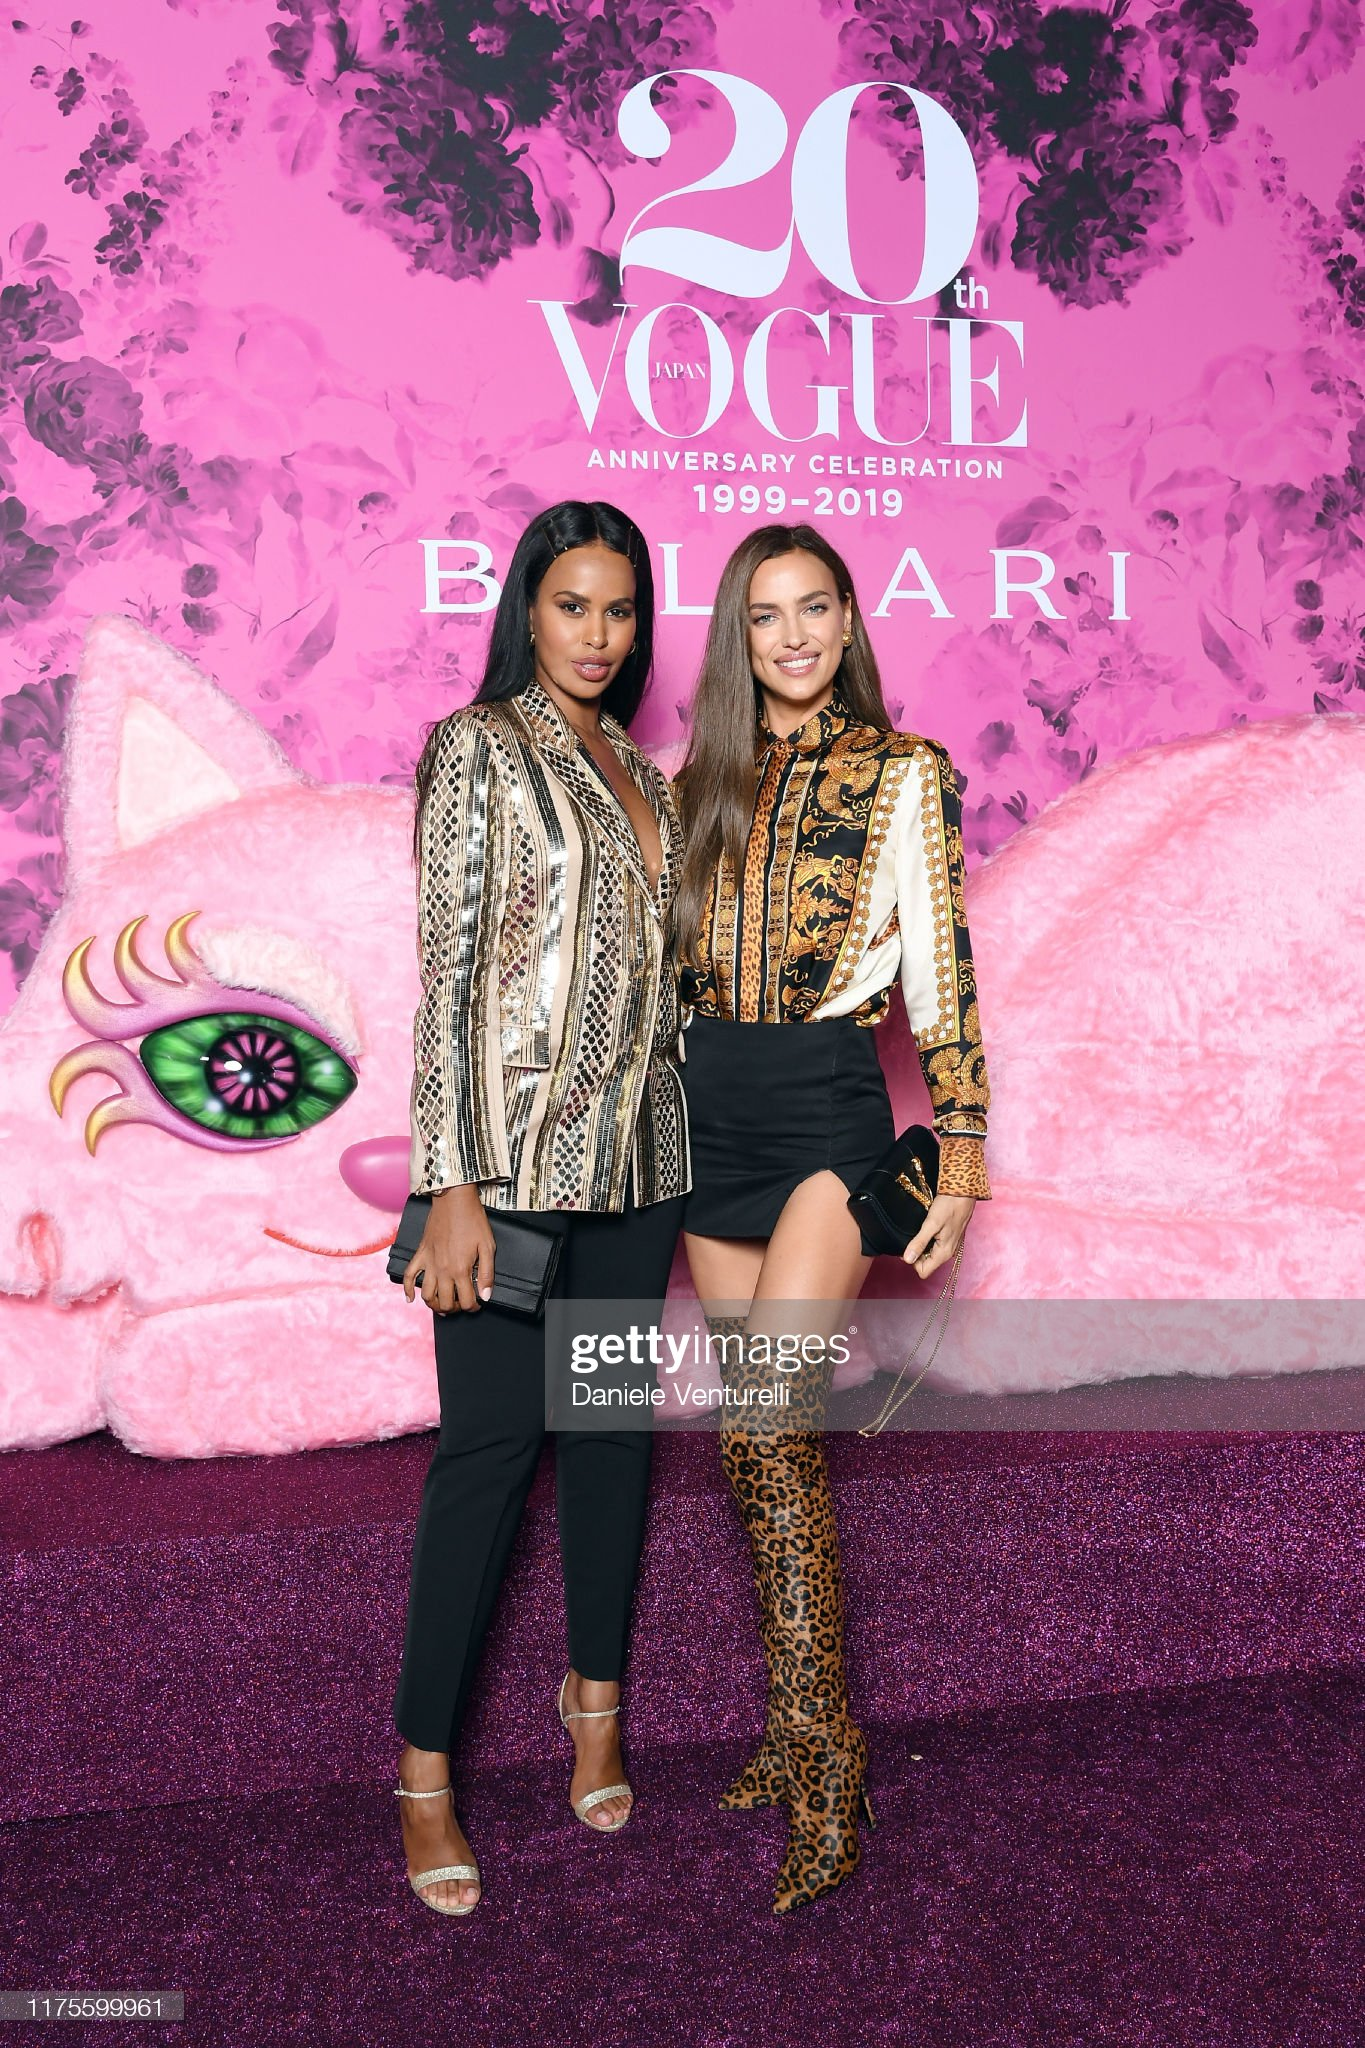 ¿Cuánto mide Irina Shayk? - Altura - Real height Sabrina-dhowre-elba-and-irina-shayk-at-the-vogue-japan-20th-party-on-picture-id1175599961?s=2048x2048